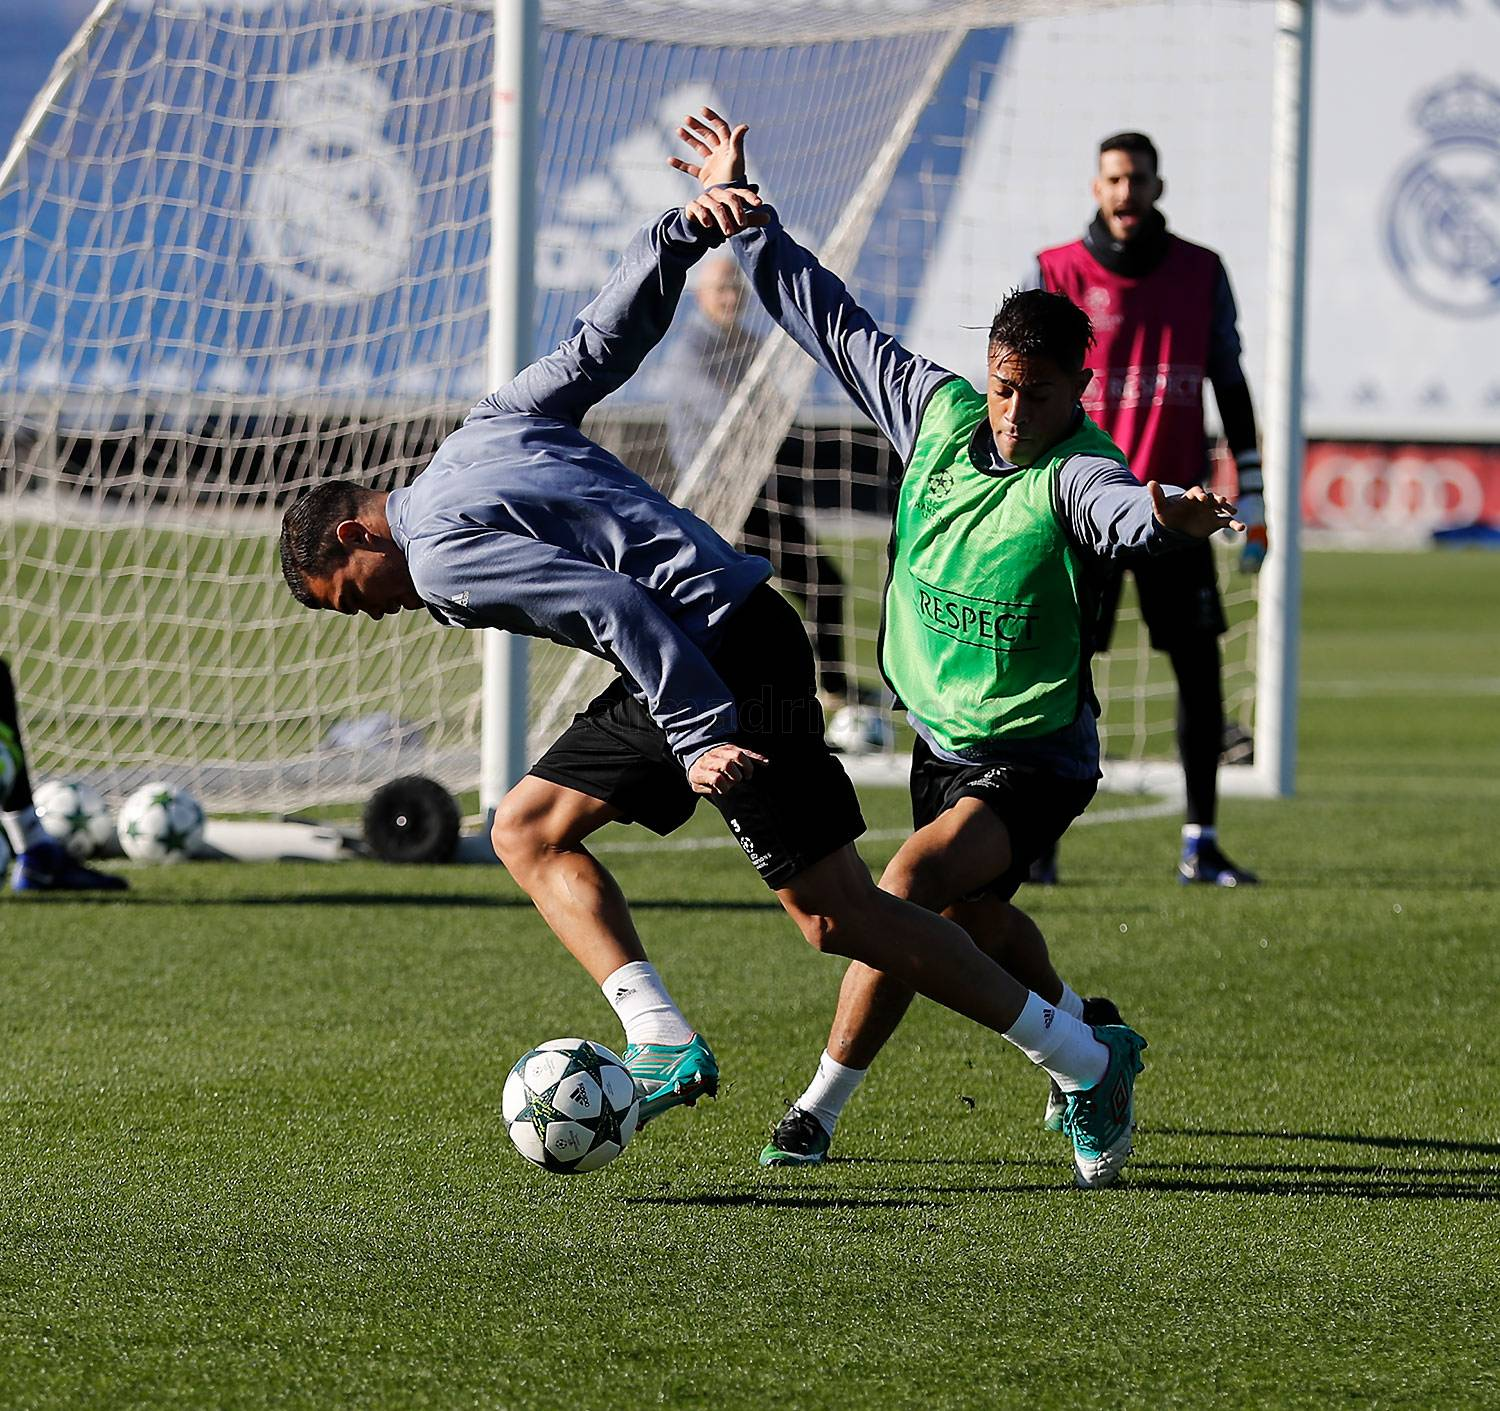 Real Madrid - Entrenamiento del Real Madrid - 06-12-2016